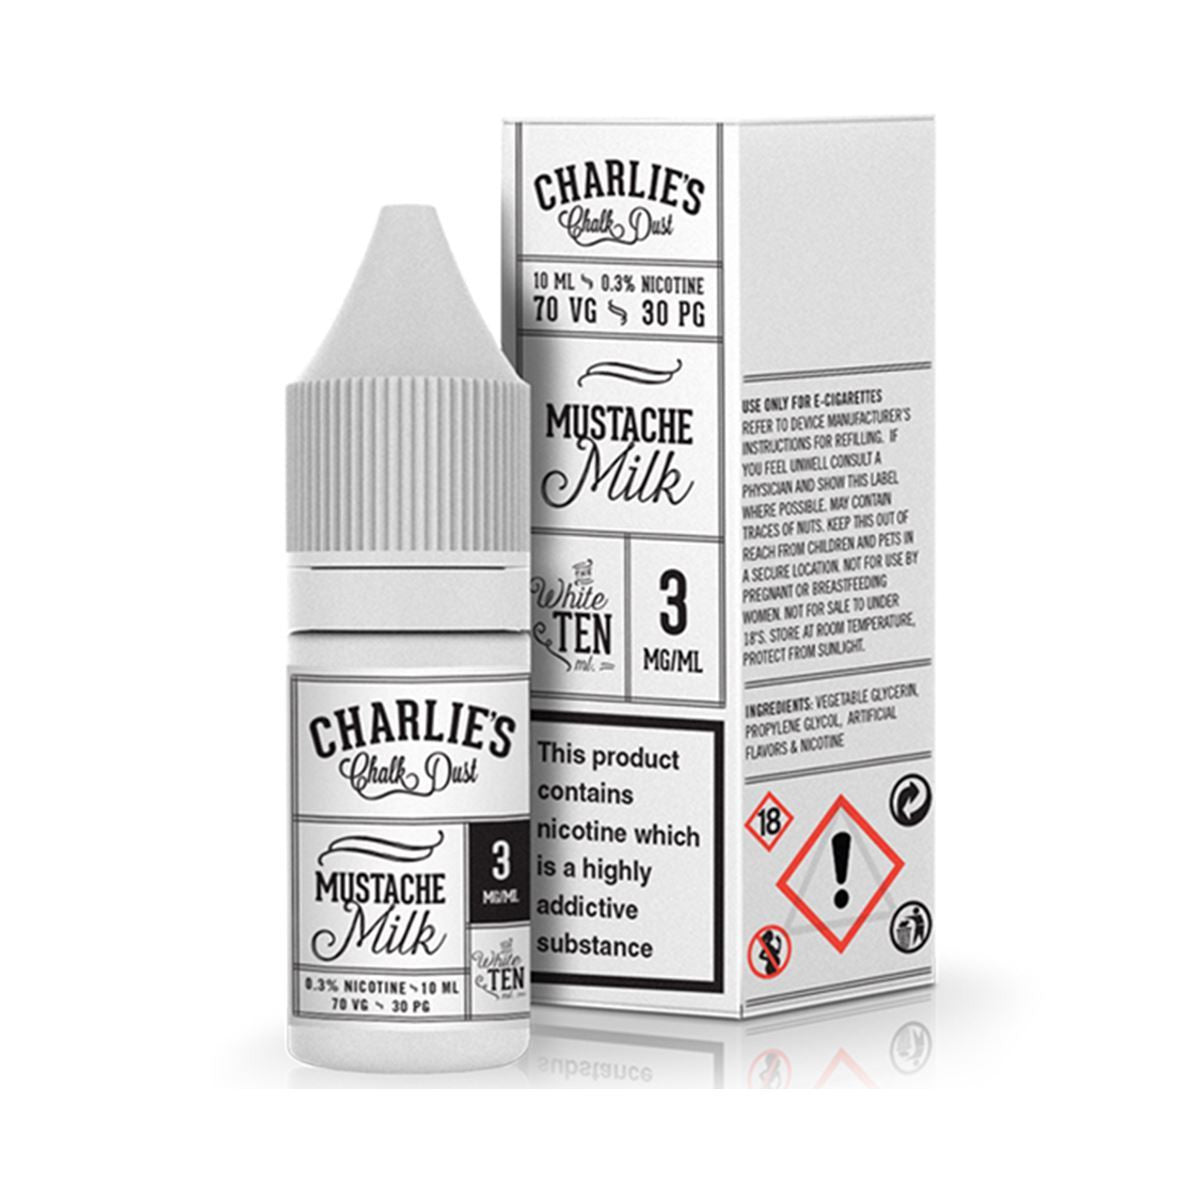 Mustache Milk Eliquid By Charlie's Chalk Dust